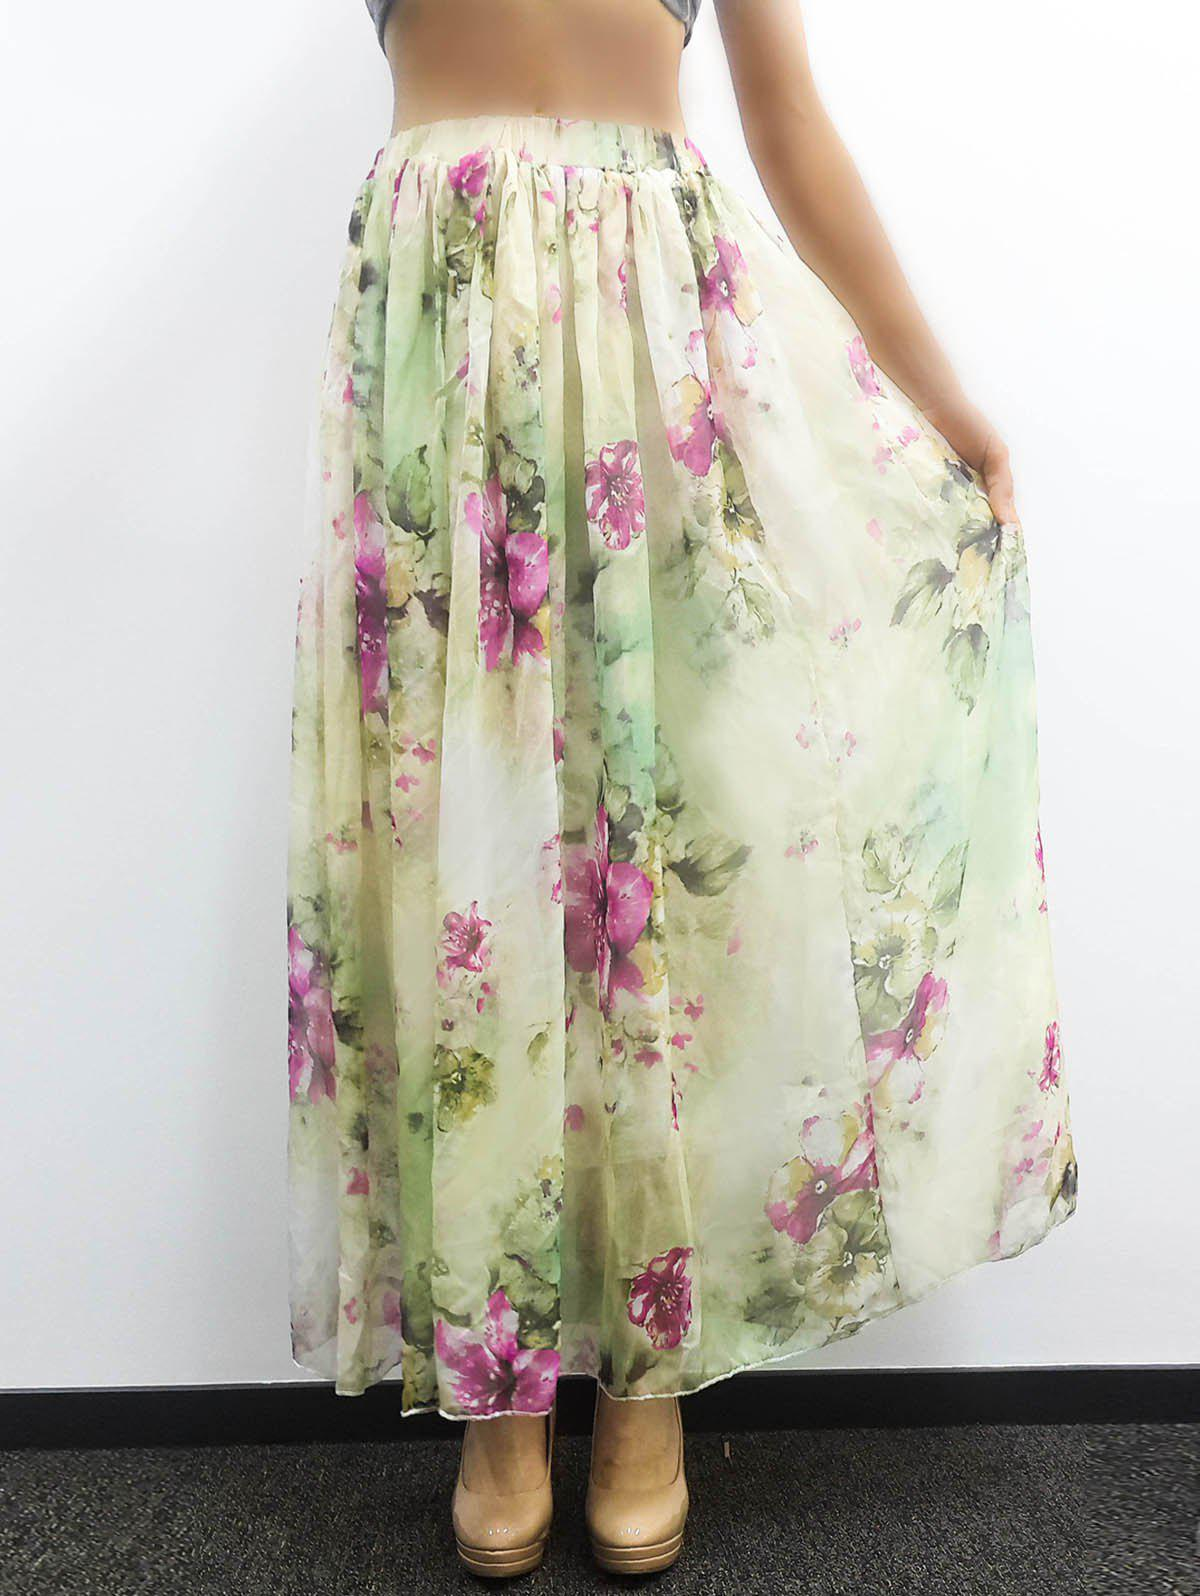 Floral Print Ankle-Length Skirt - COLORMIX ONE SIZE(FIT SIZE XS TO M)